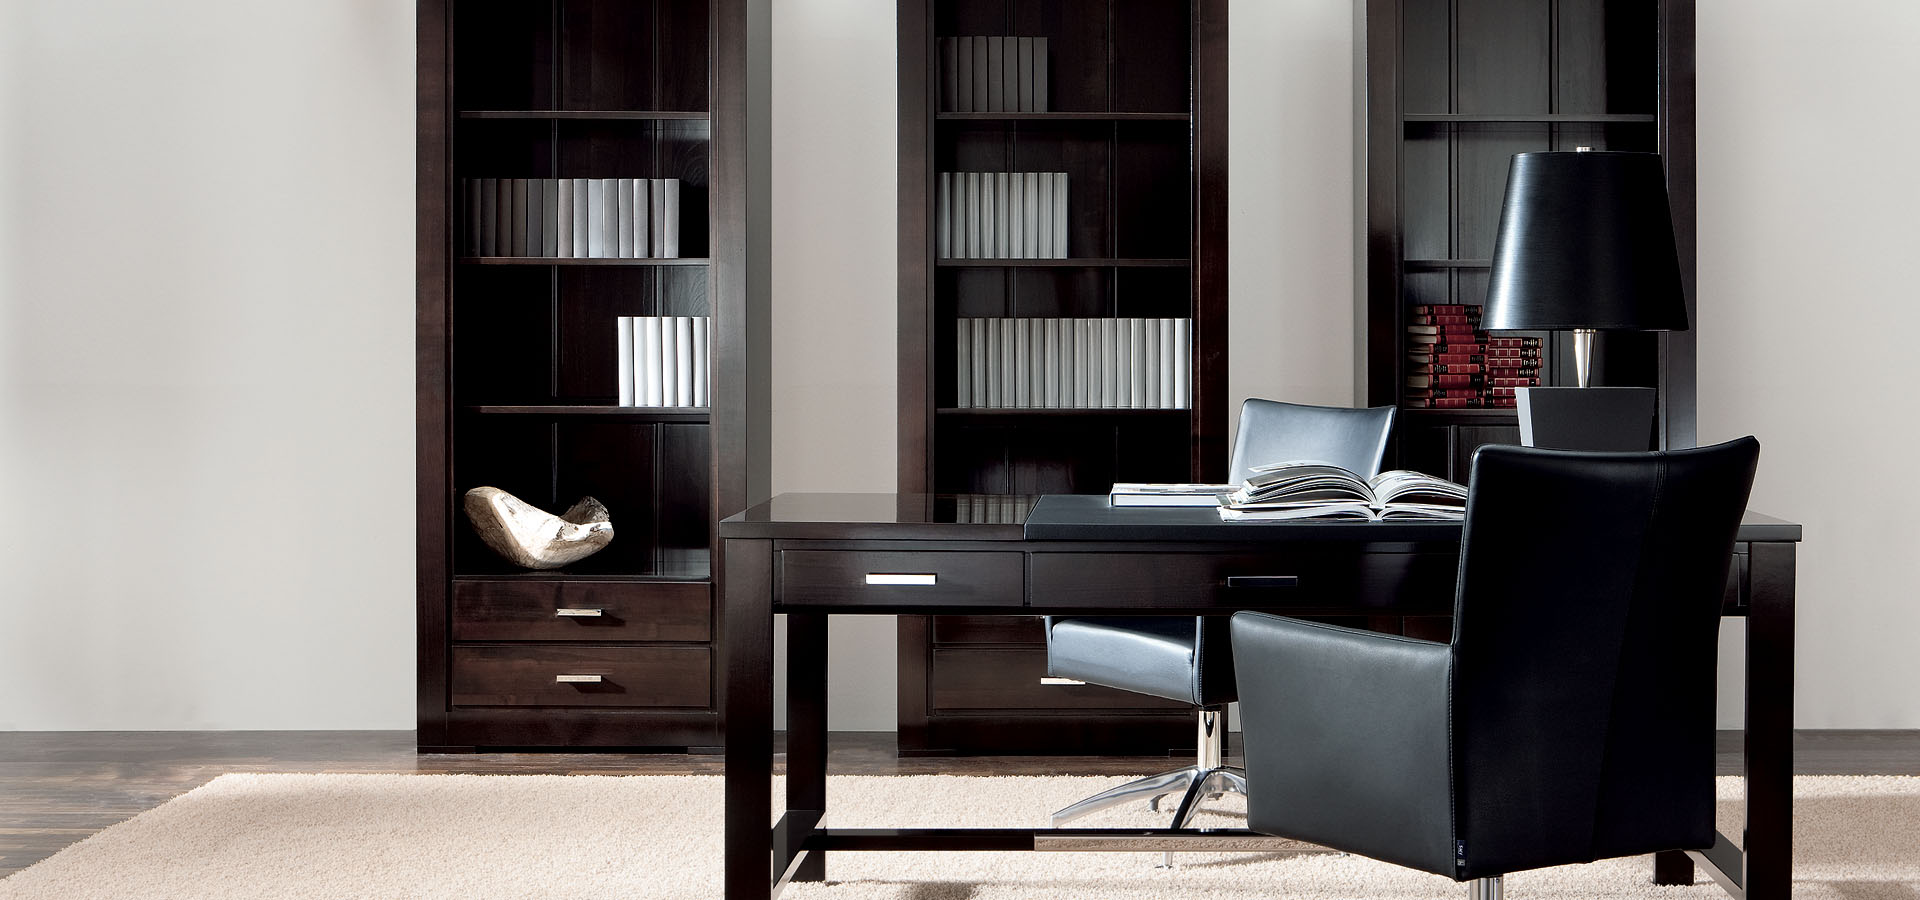 willkommen in der m belmanufaktur form exclusiv. Black Bedroom Furniture Sets. Home Design Ideas